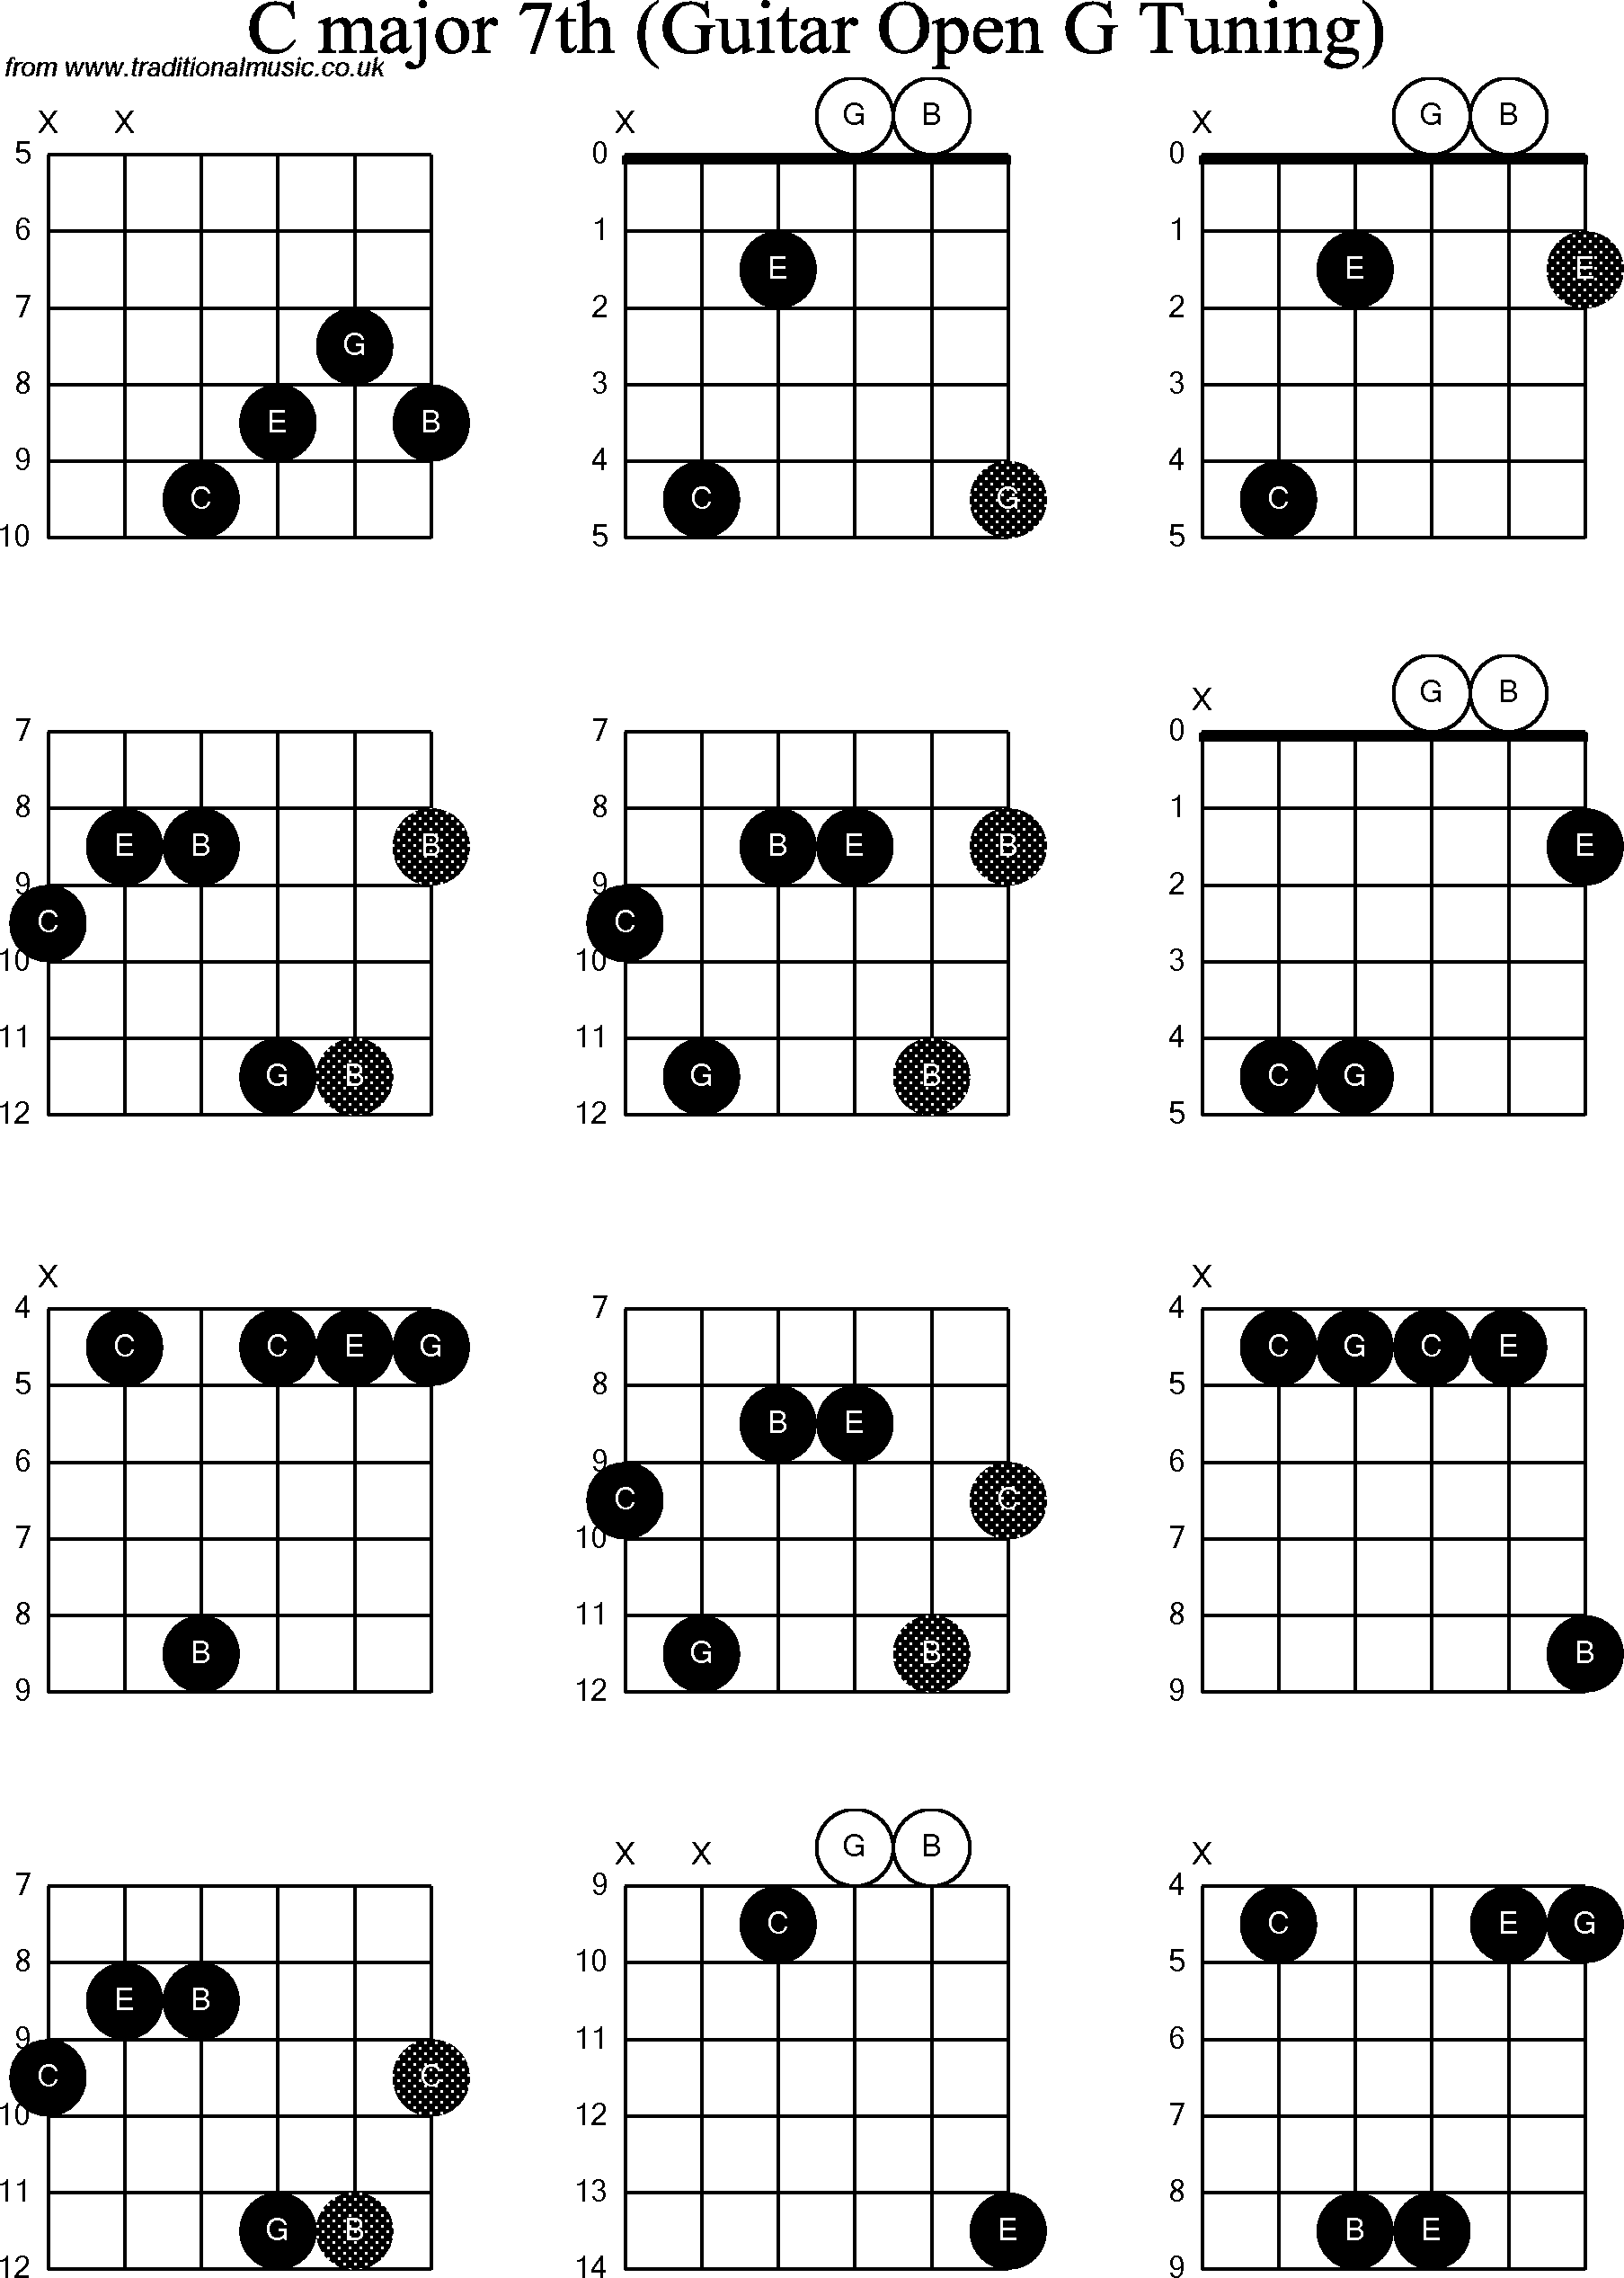 Chord diagrams for dobro c major7th chord diagrams for dobro c major7th hexwebz Gallery